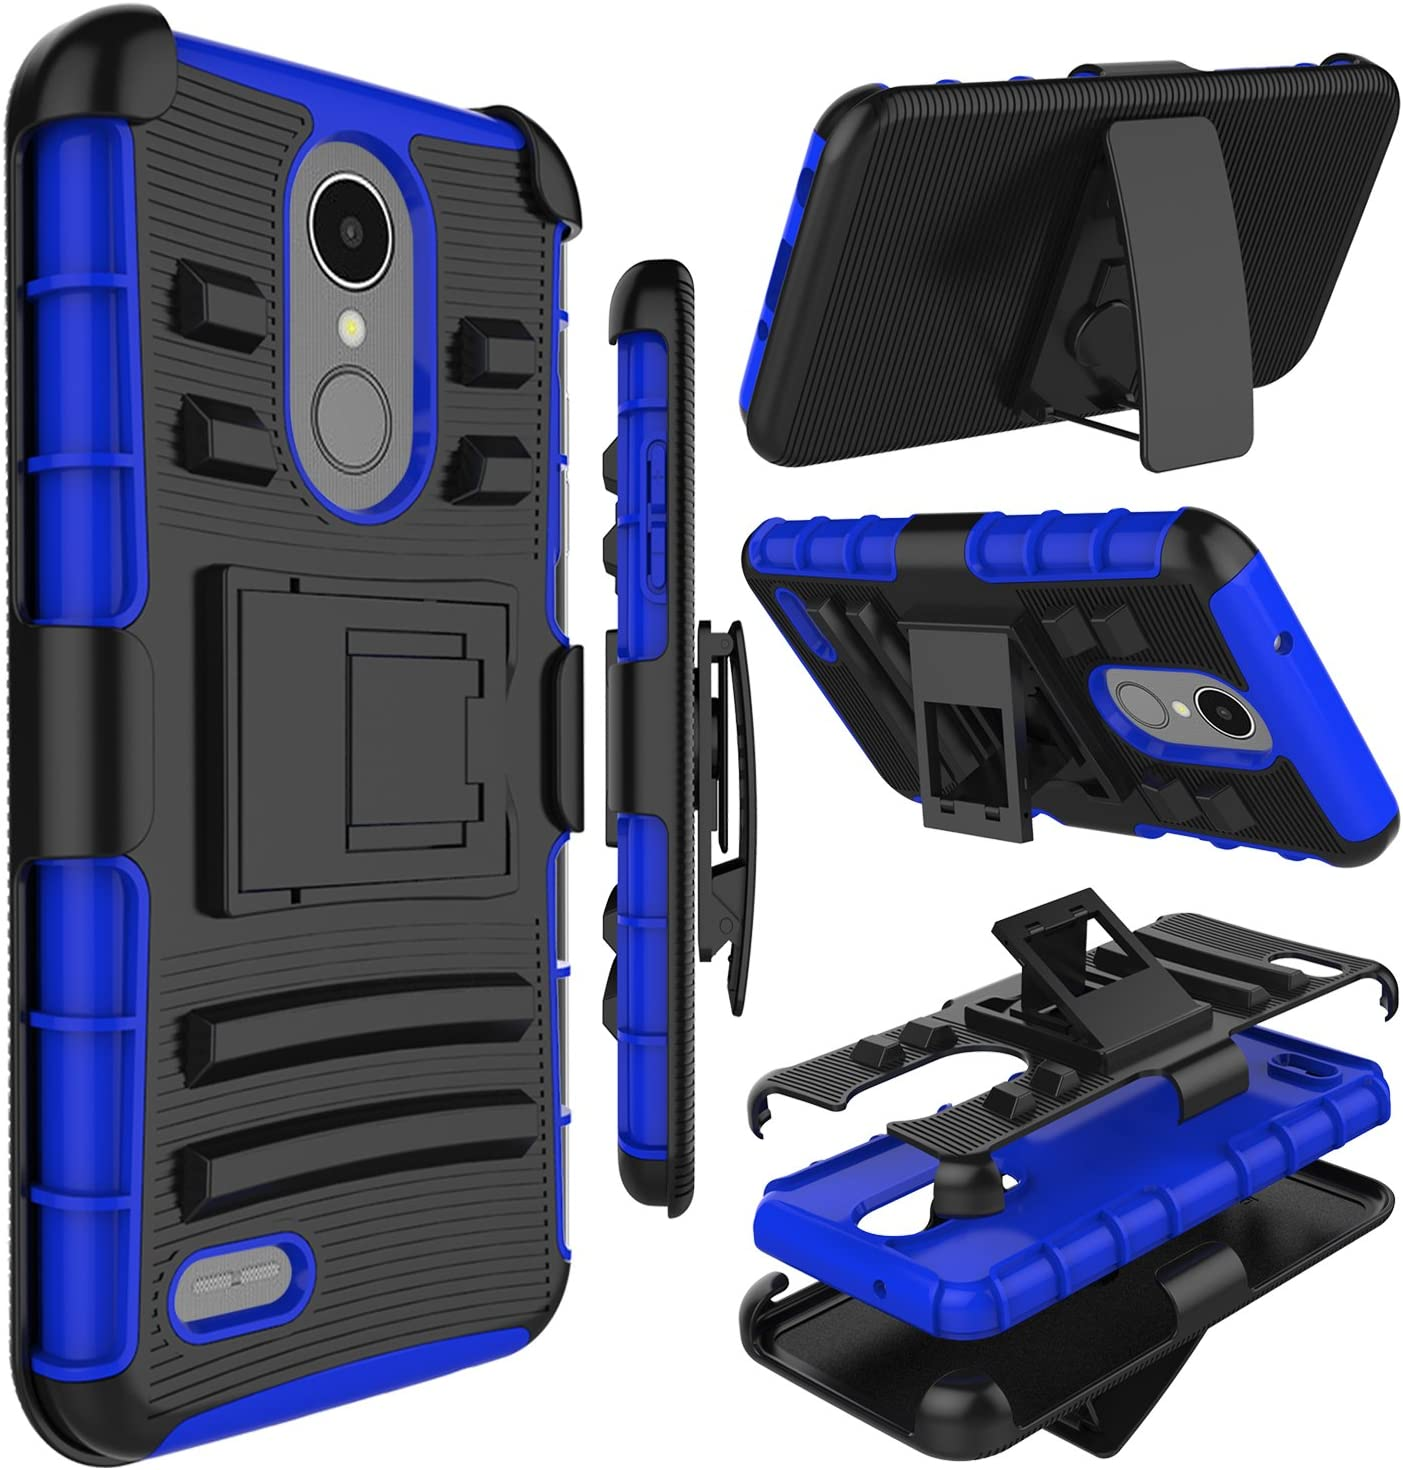 LG Aristo 3 Case, LG Tribute Empire Case, Zenic Heavy Duty Shockproof Full-Body Protective Hybrid Case with Swivel Belt Clip and Kickstand for LG LV3 2018/LG Rebel 3/LG Aristo 2/LG Zone 4(Blue)